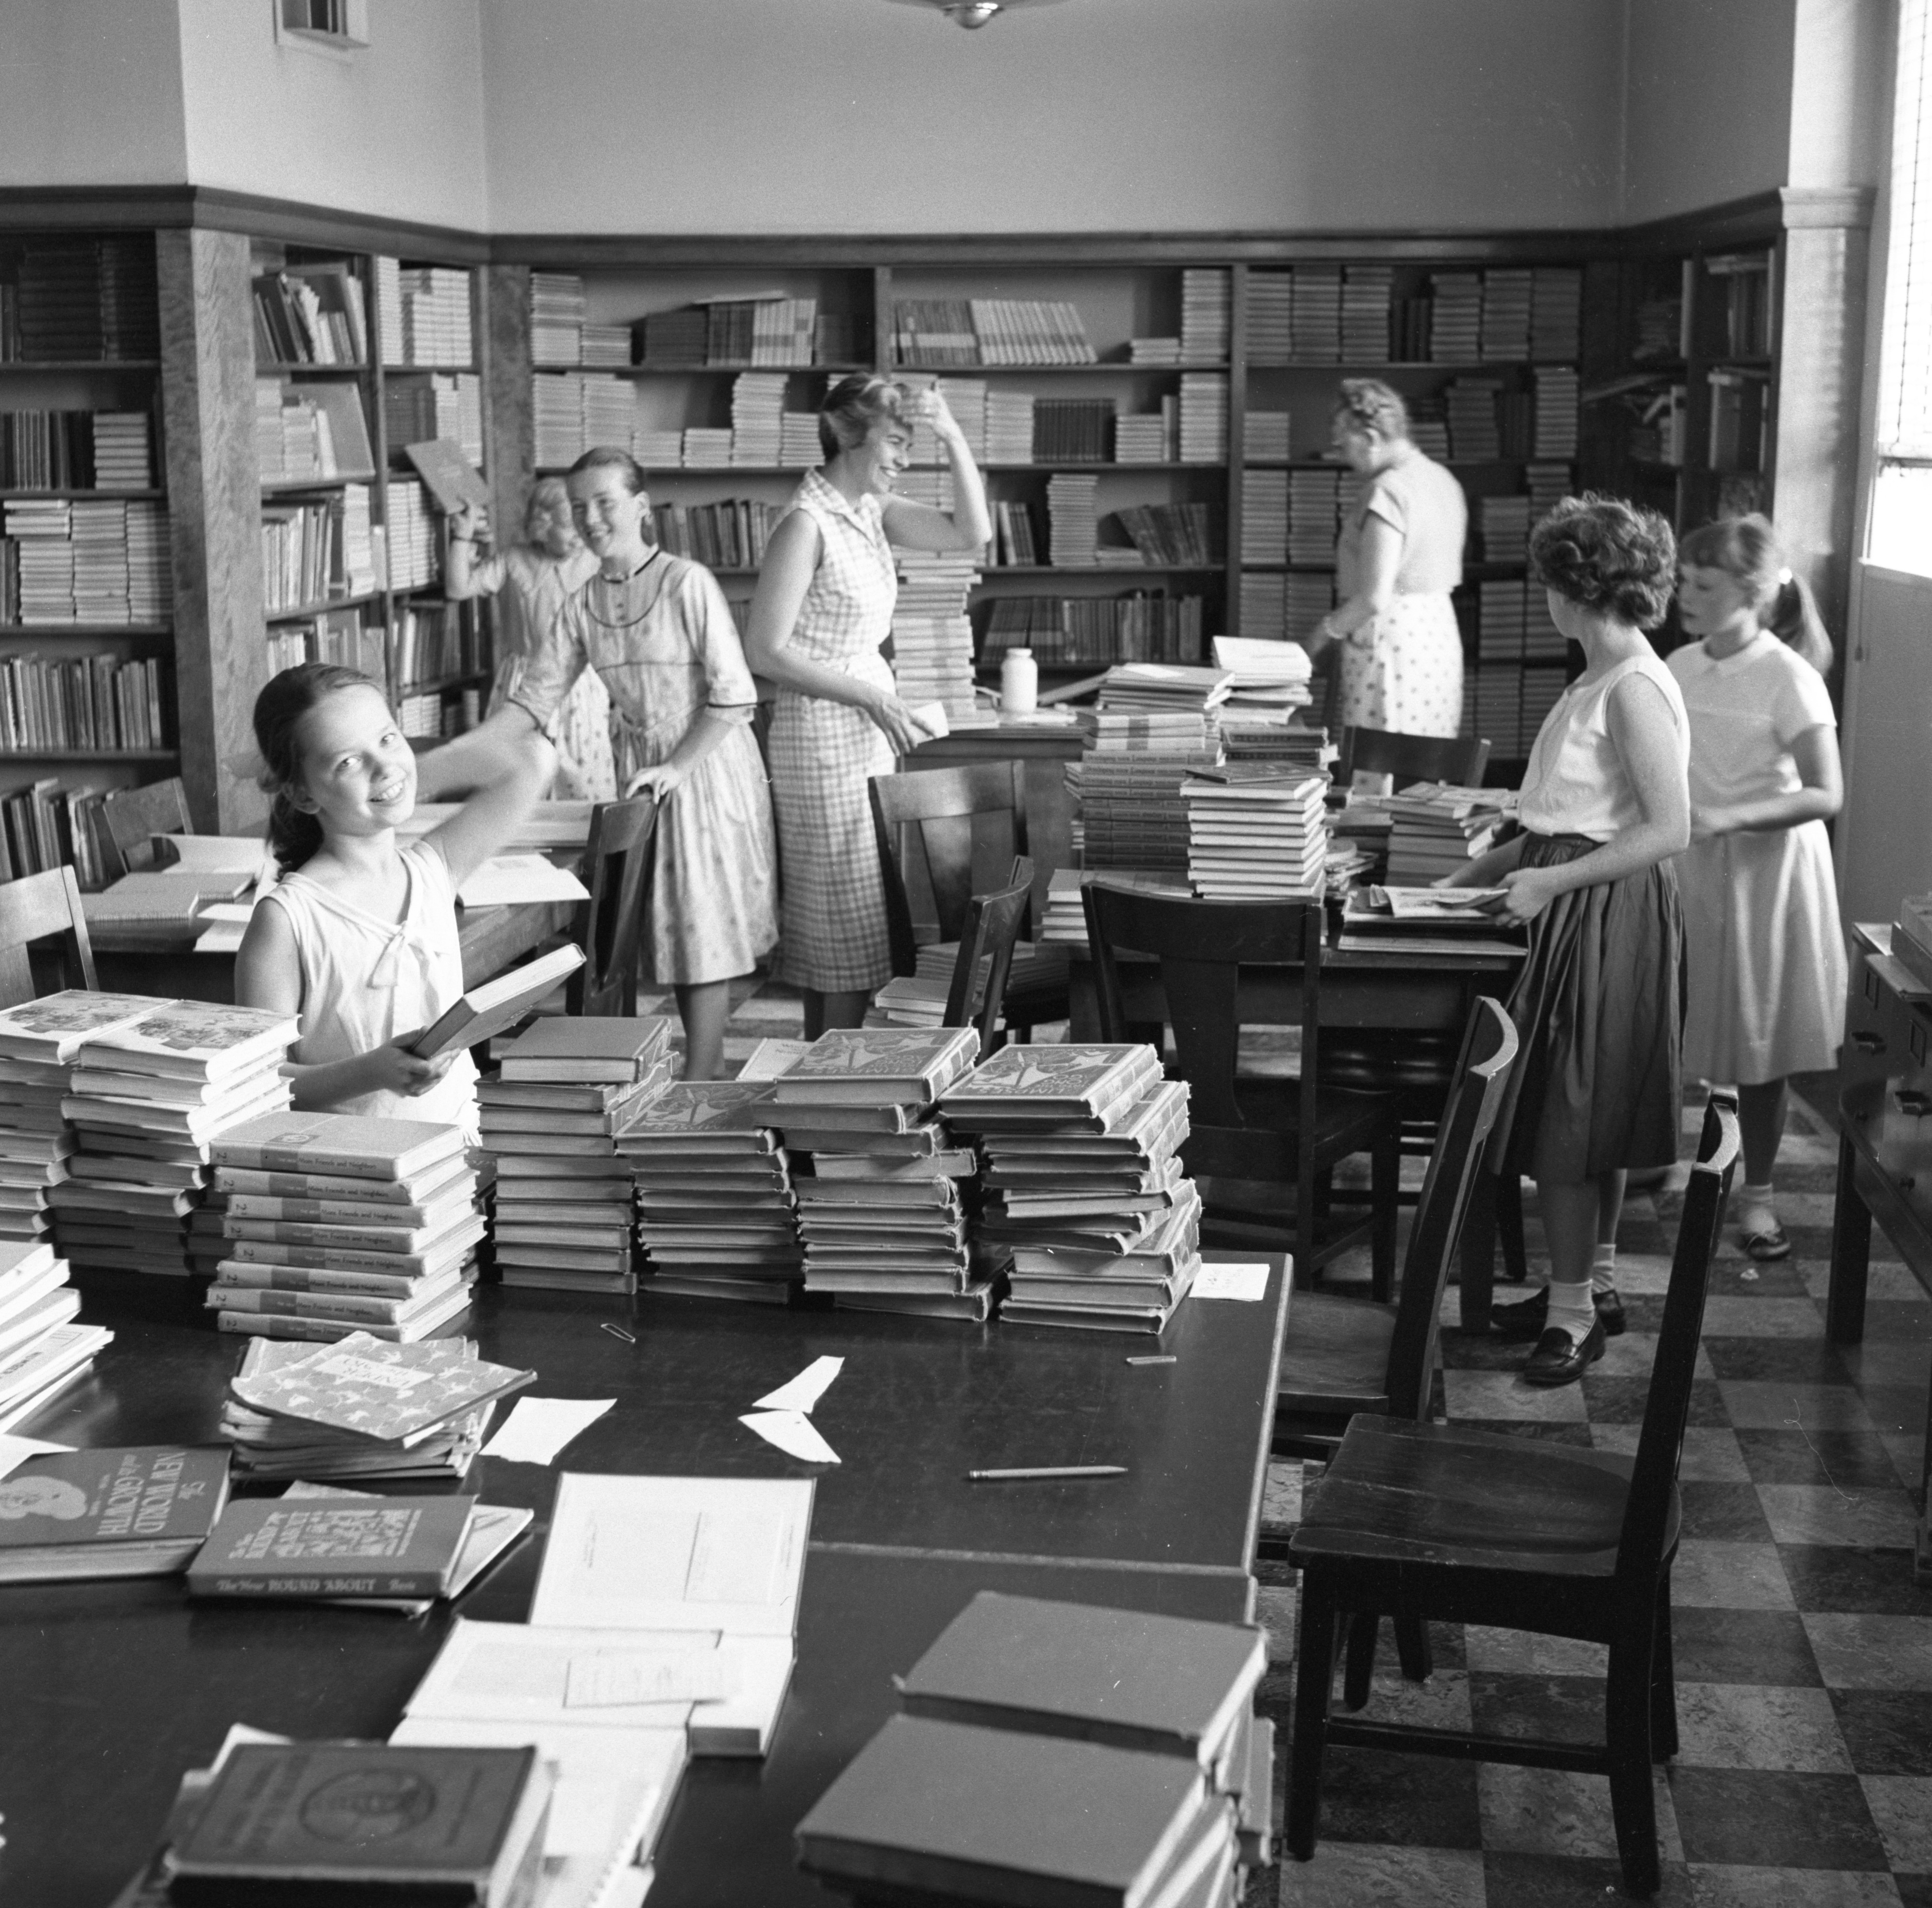 Image from Students Help In Northside Library On Last Day Of School, June 1957